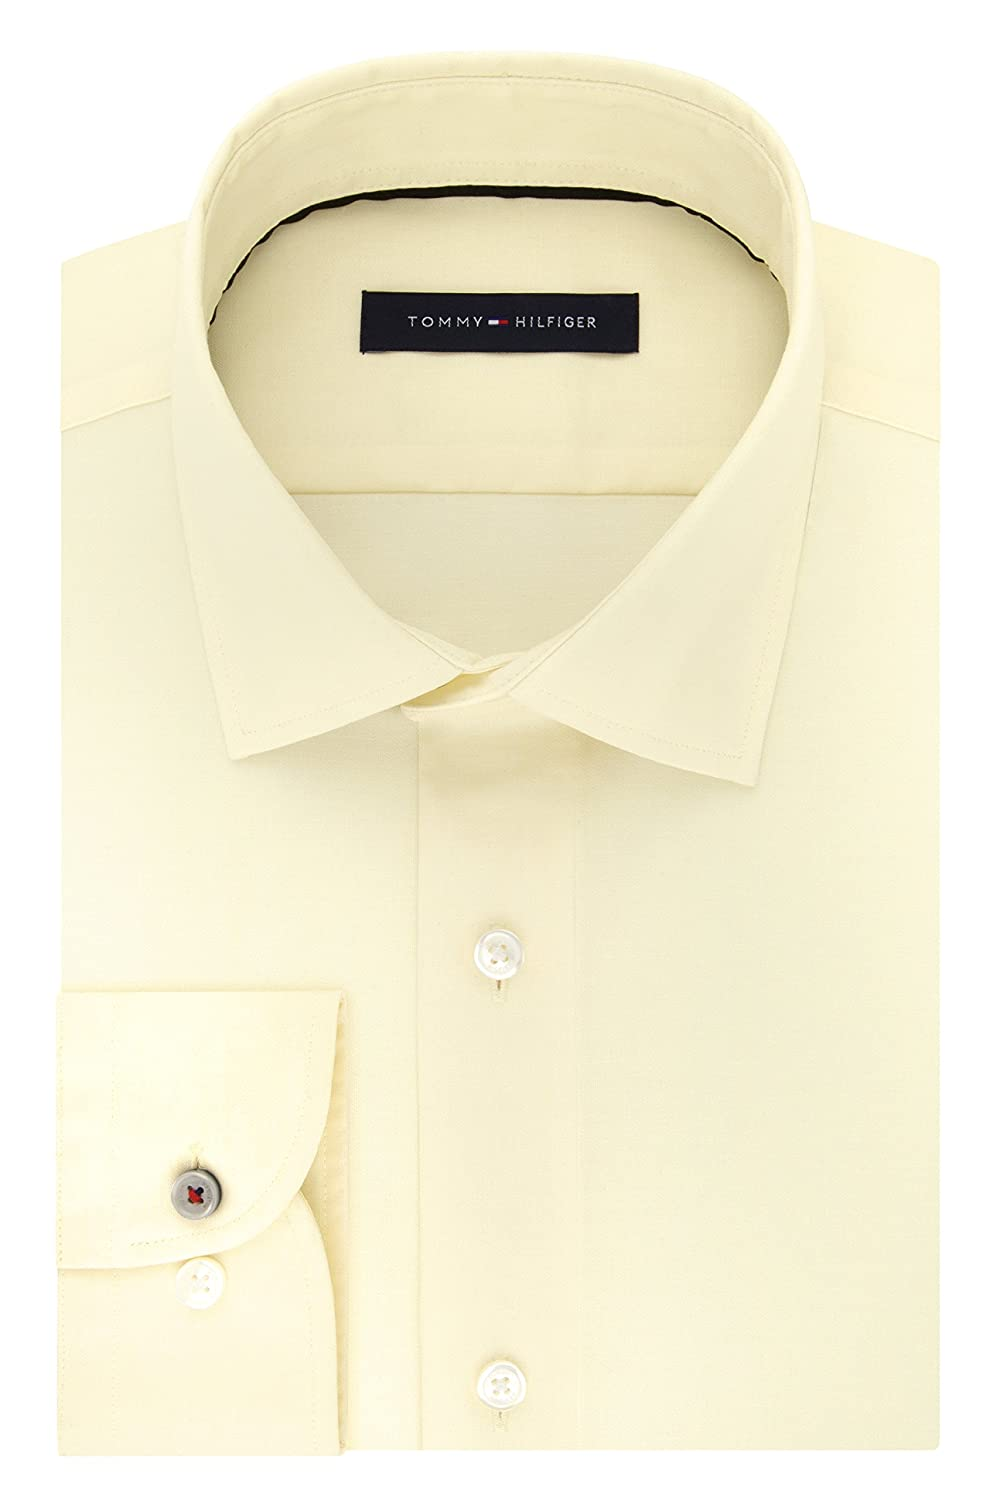 39d1af17 Spread collar, regular cuff, no pocket. Stretch fabric for extra added  comfort. Slim fit dress shirts have tapered sleeves, higher arm holes, and  a slimmer ...